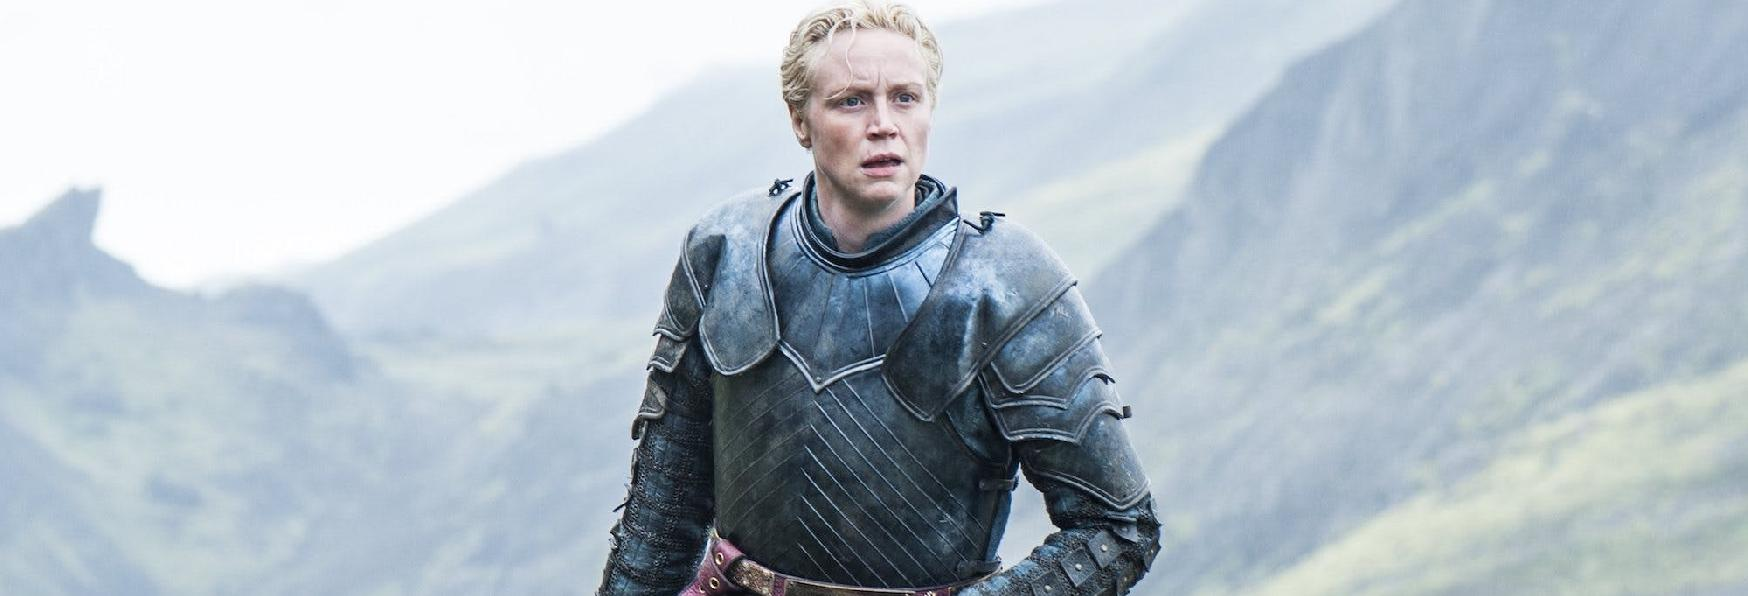 Game of Thrones 8: l'Interprete di Brienne parla del Finale